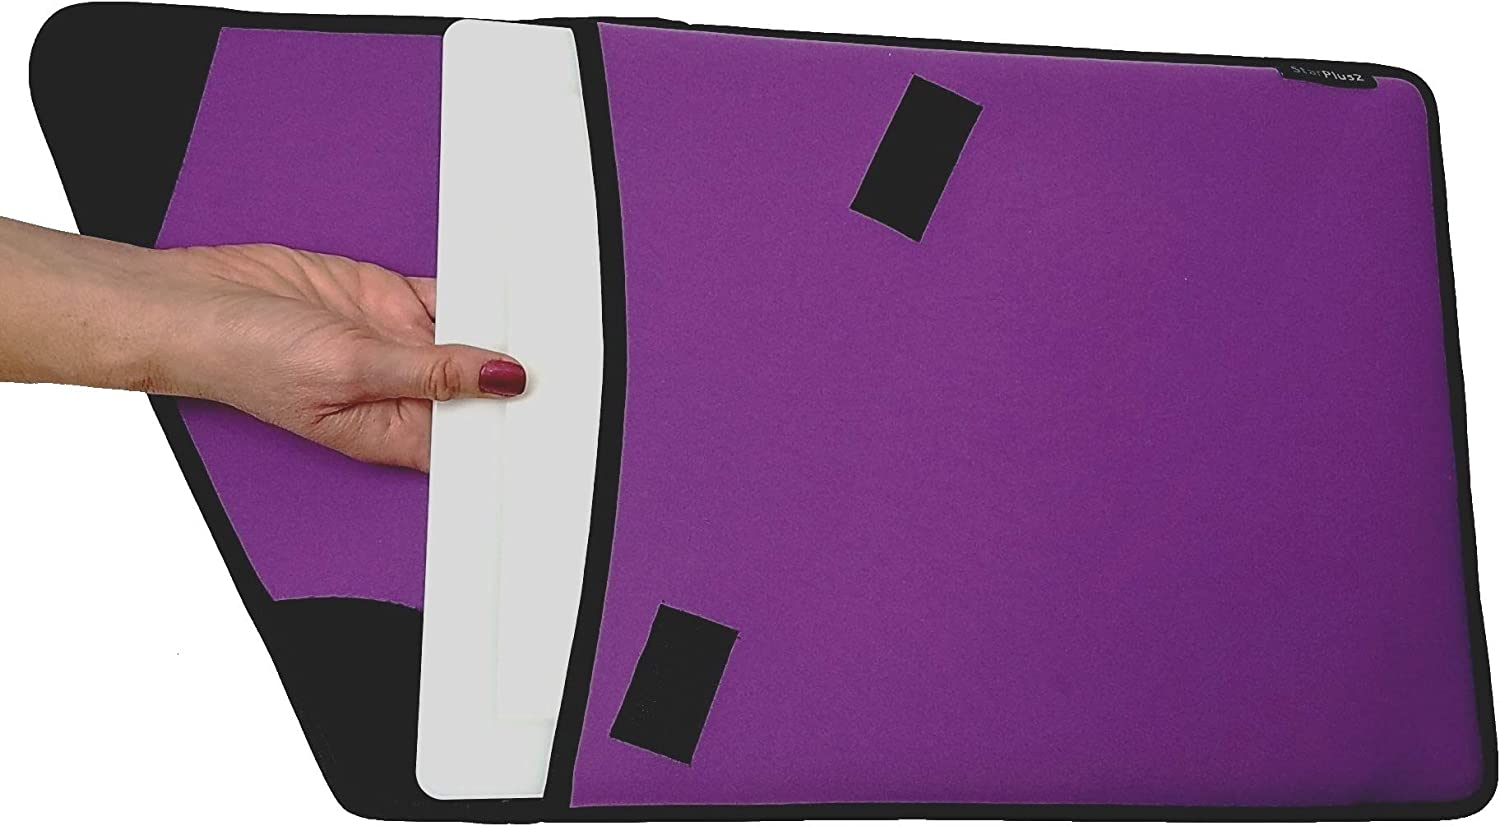 StarPlus2 Protective Case for Cricut Bright Pad Tracing Light Board Gray with Black Trim Fitted Thick Neoprene Sleeve